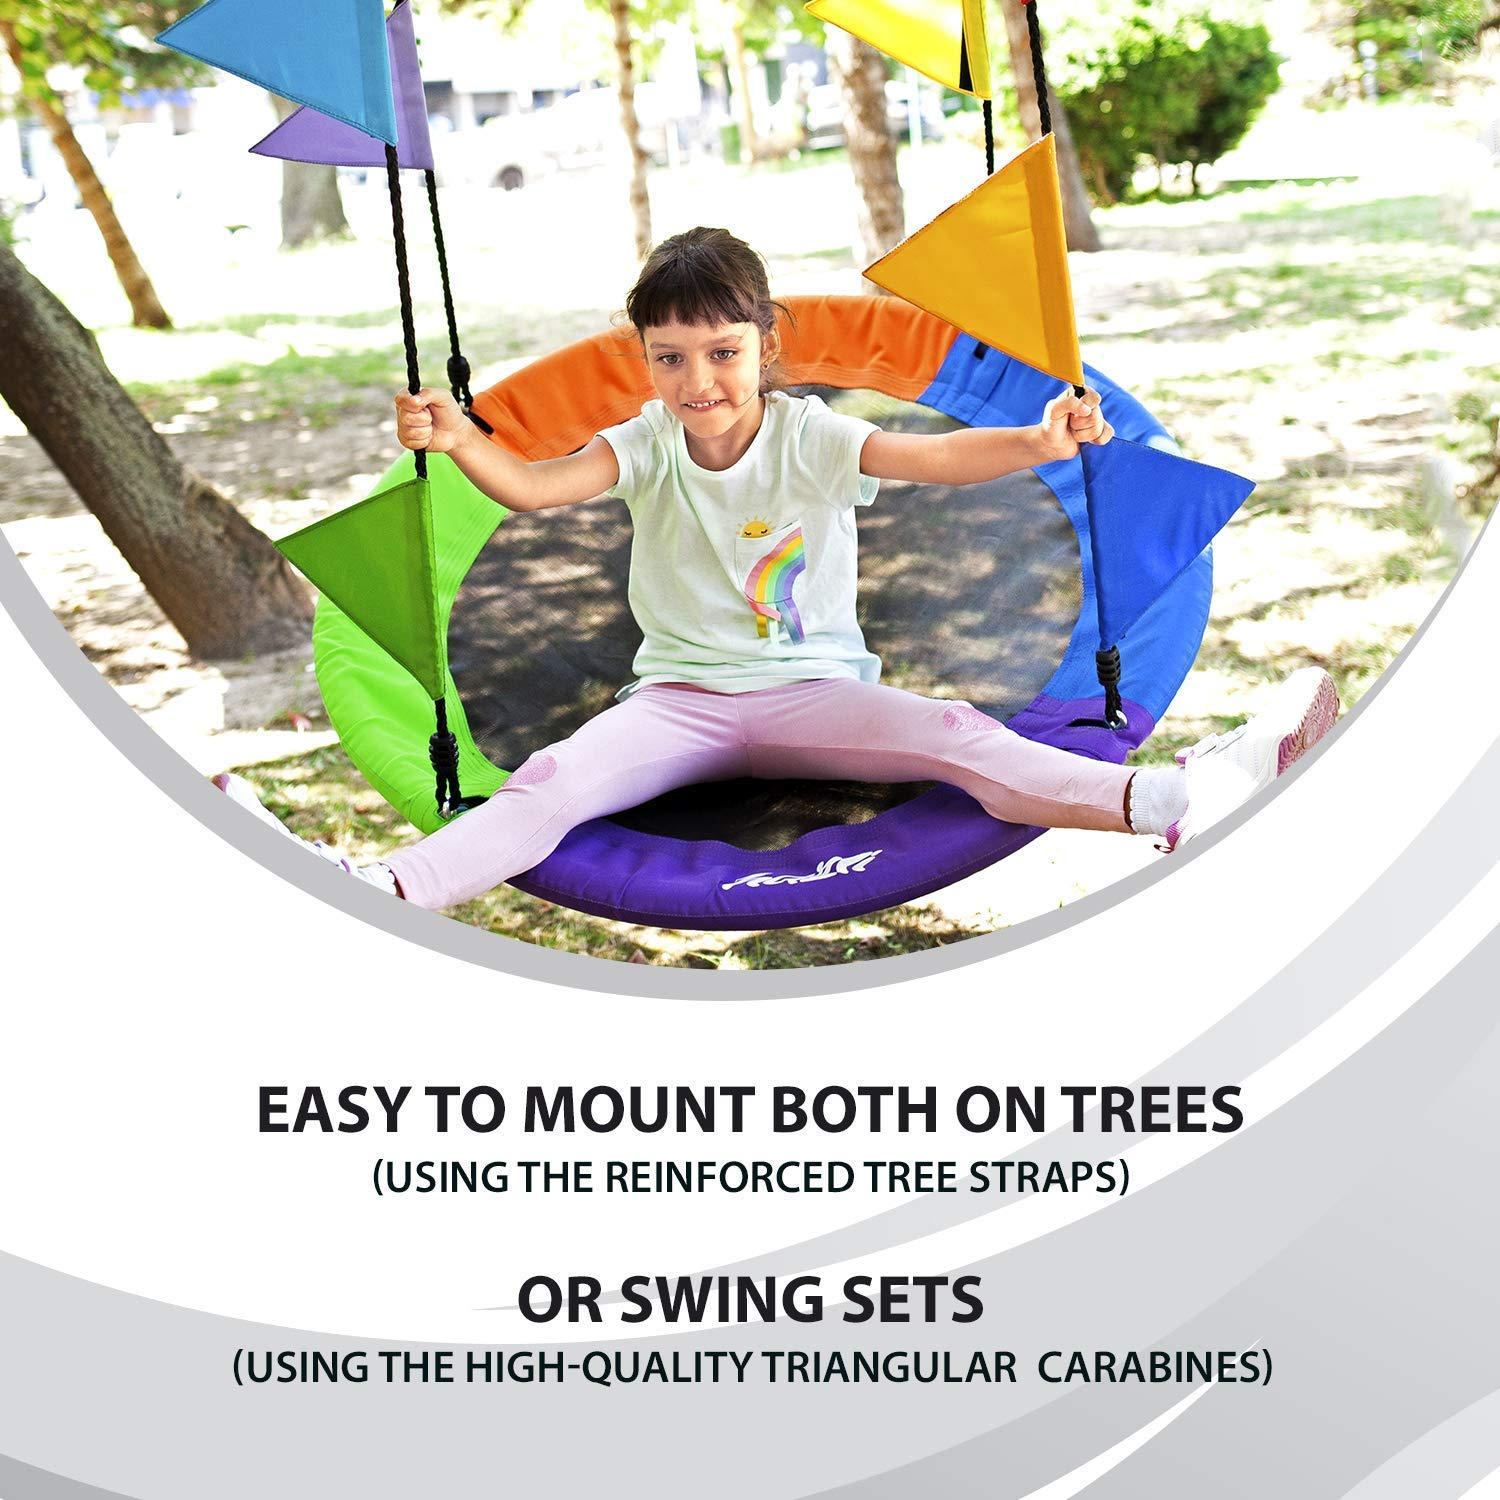 Outdoor Round Tree Swing for Kids - 40'' Saucer Tree Swing for Kids-Large Tree Swings for Children - 400 lbs Tree Swings for Outside with Hanging Kit by Hazli (Image #7)